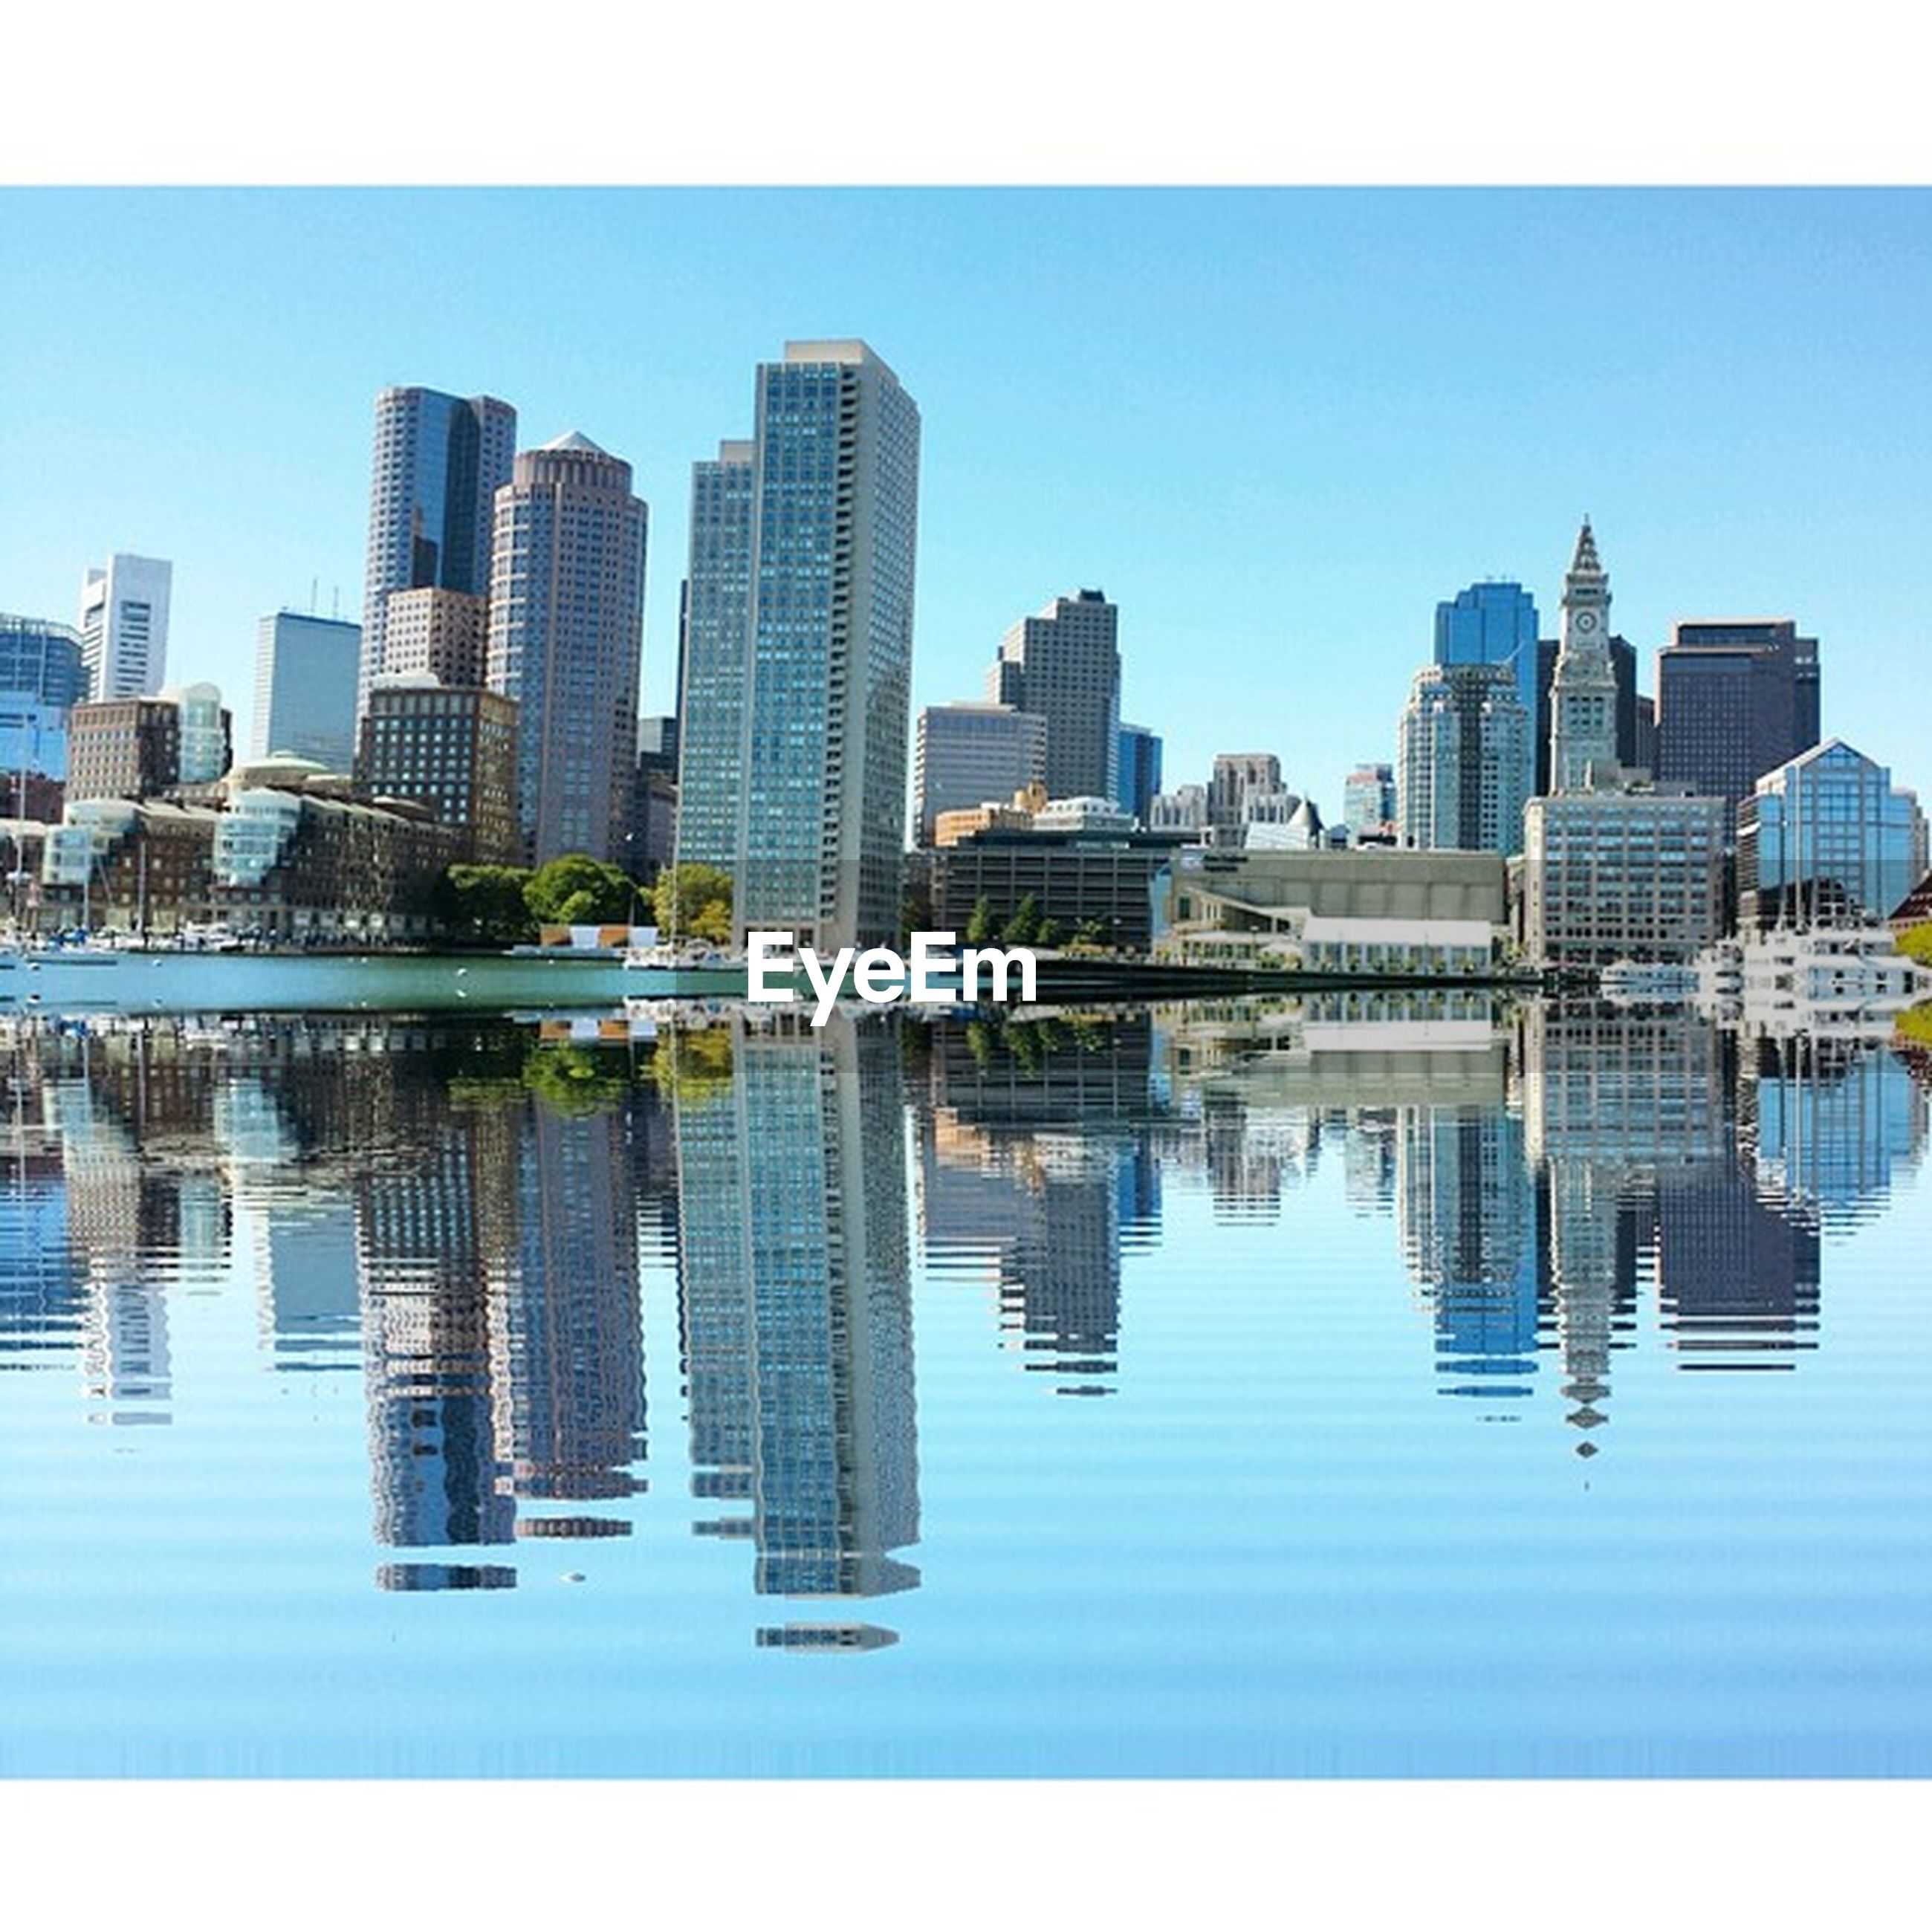 architecture, building exterior, built structure, city, water, skyscraper, reflection, waterfront, clear sky, cityscape, blue, modern, river, office building, tall - high, urban skyline, tower, building, skyline, sky